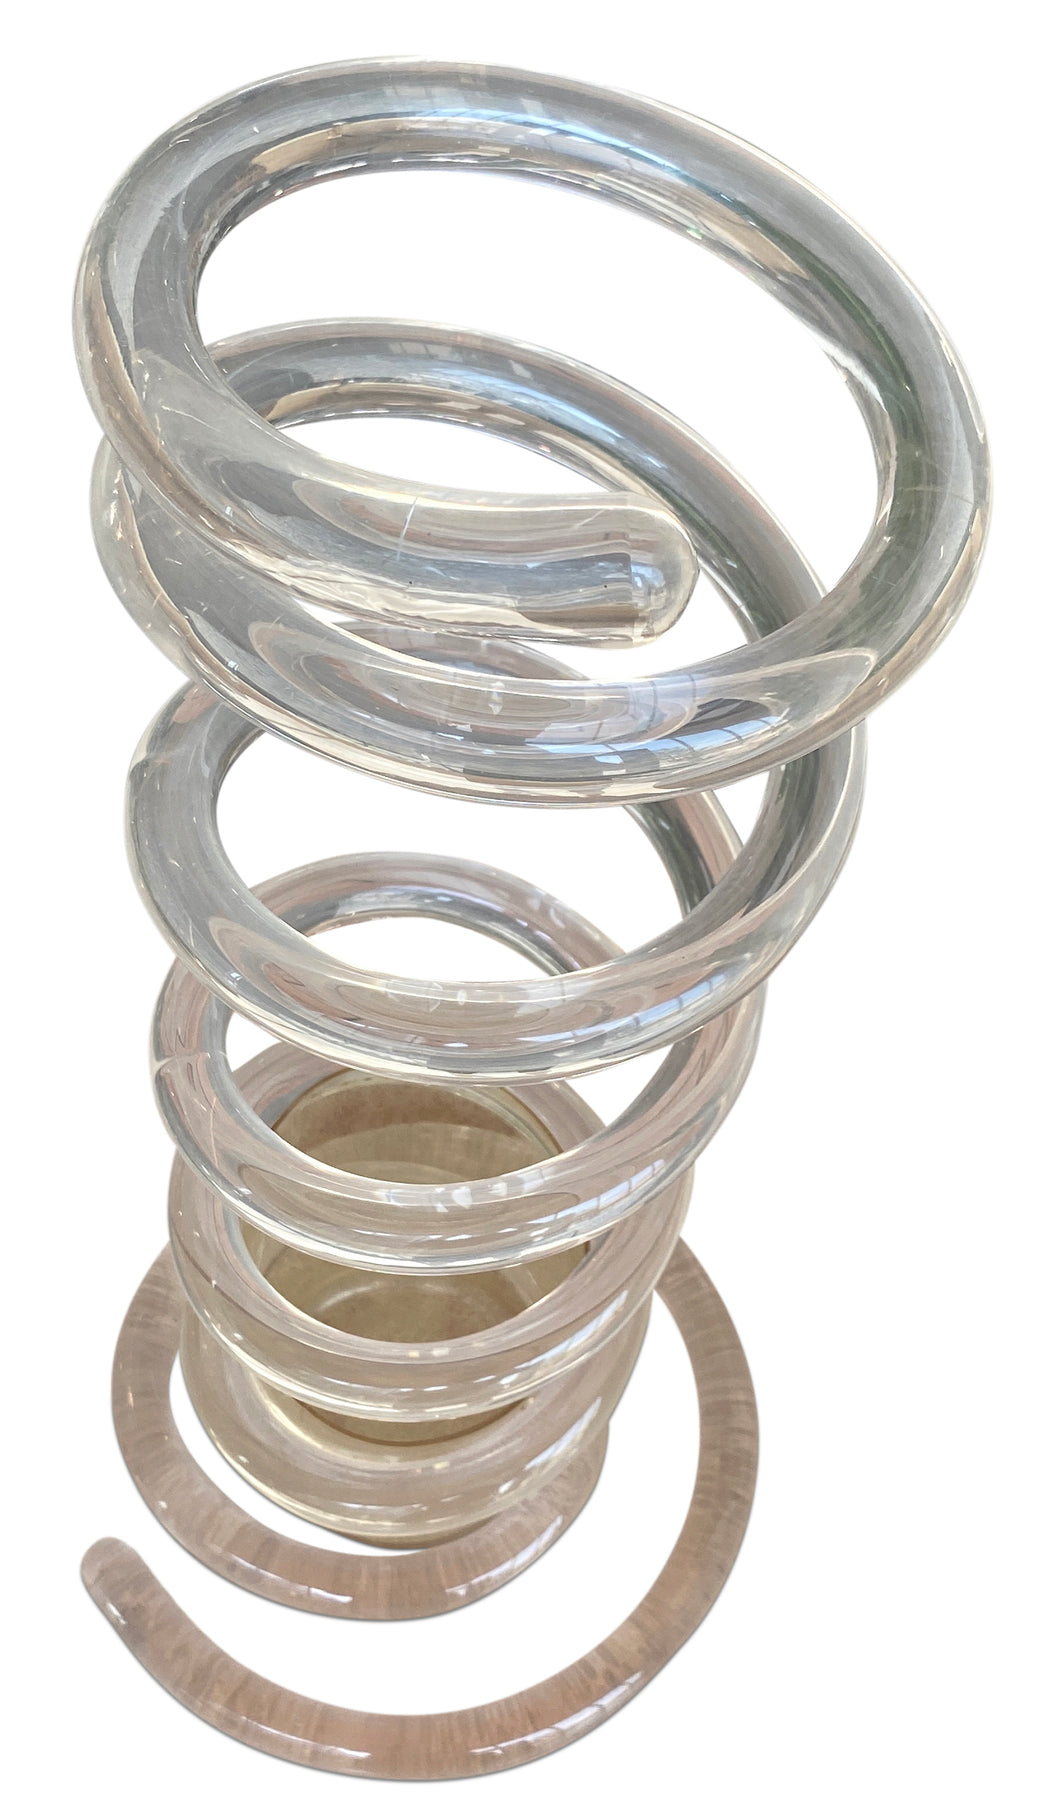 Acrylic Spiral Umbrella Stand by Dorothy Thorpe